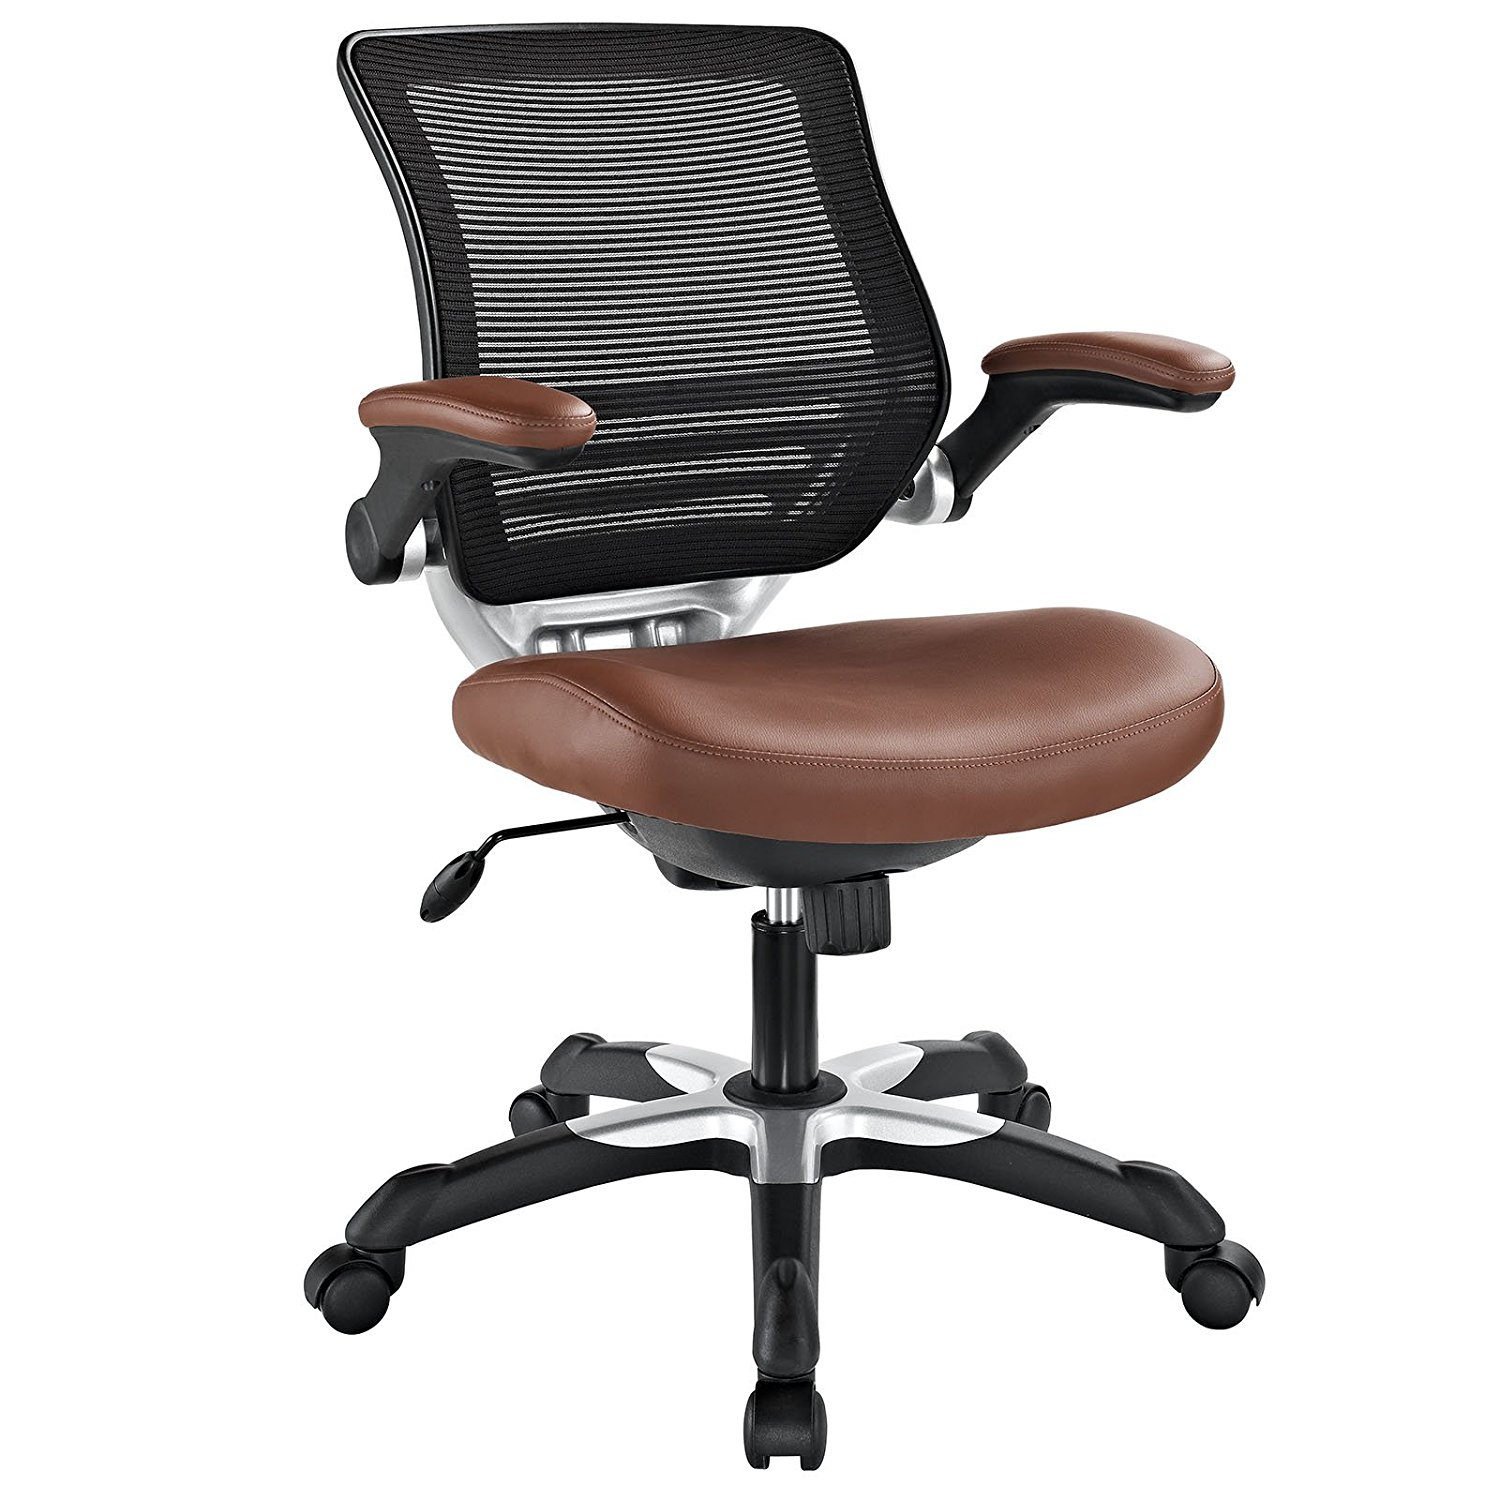 Modway Edge Mesh Back And Tan Vinyl Seat Office Chair With Flip Up